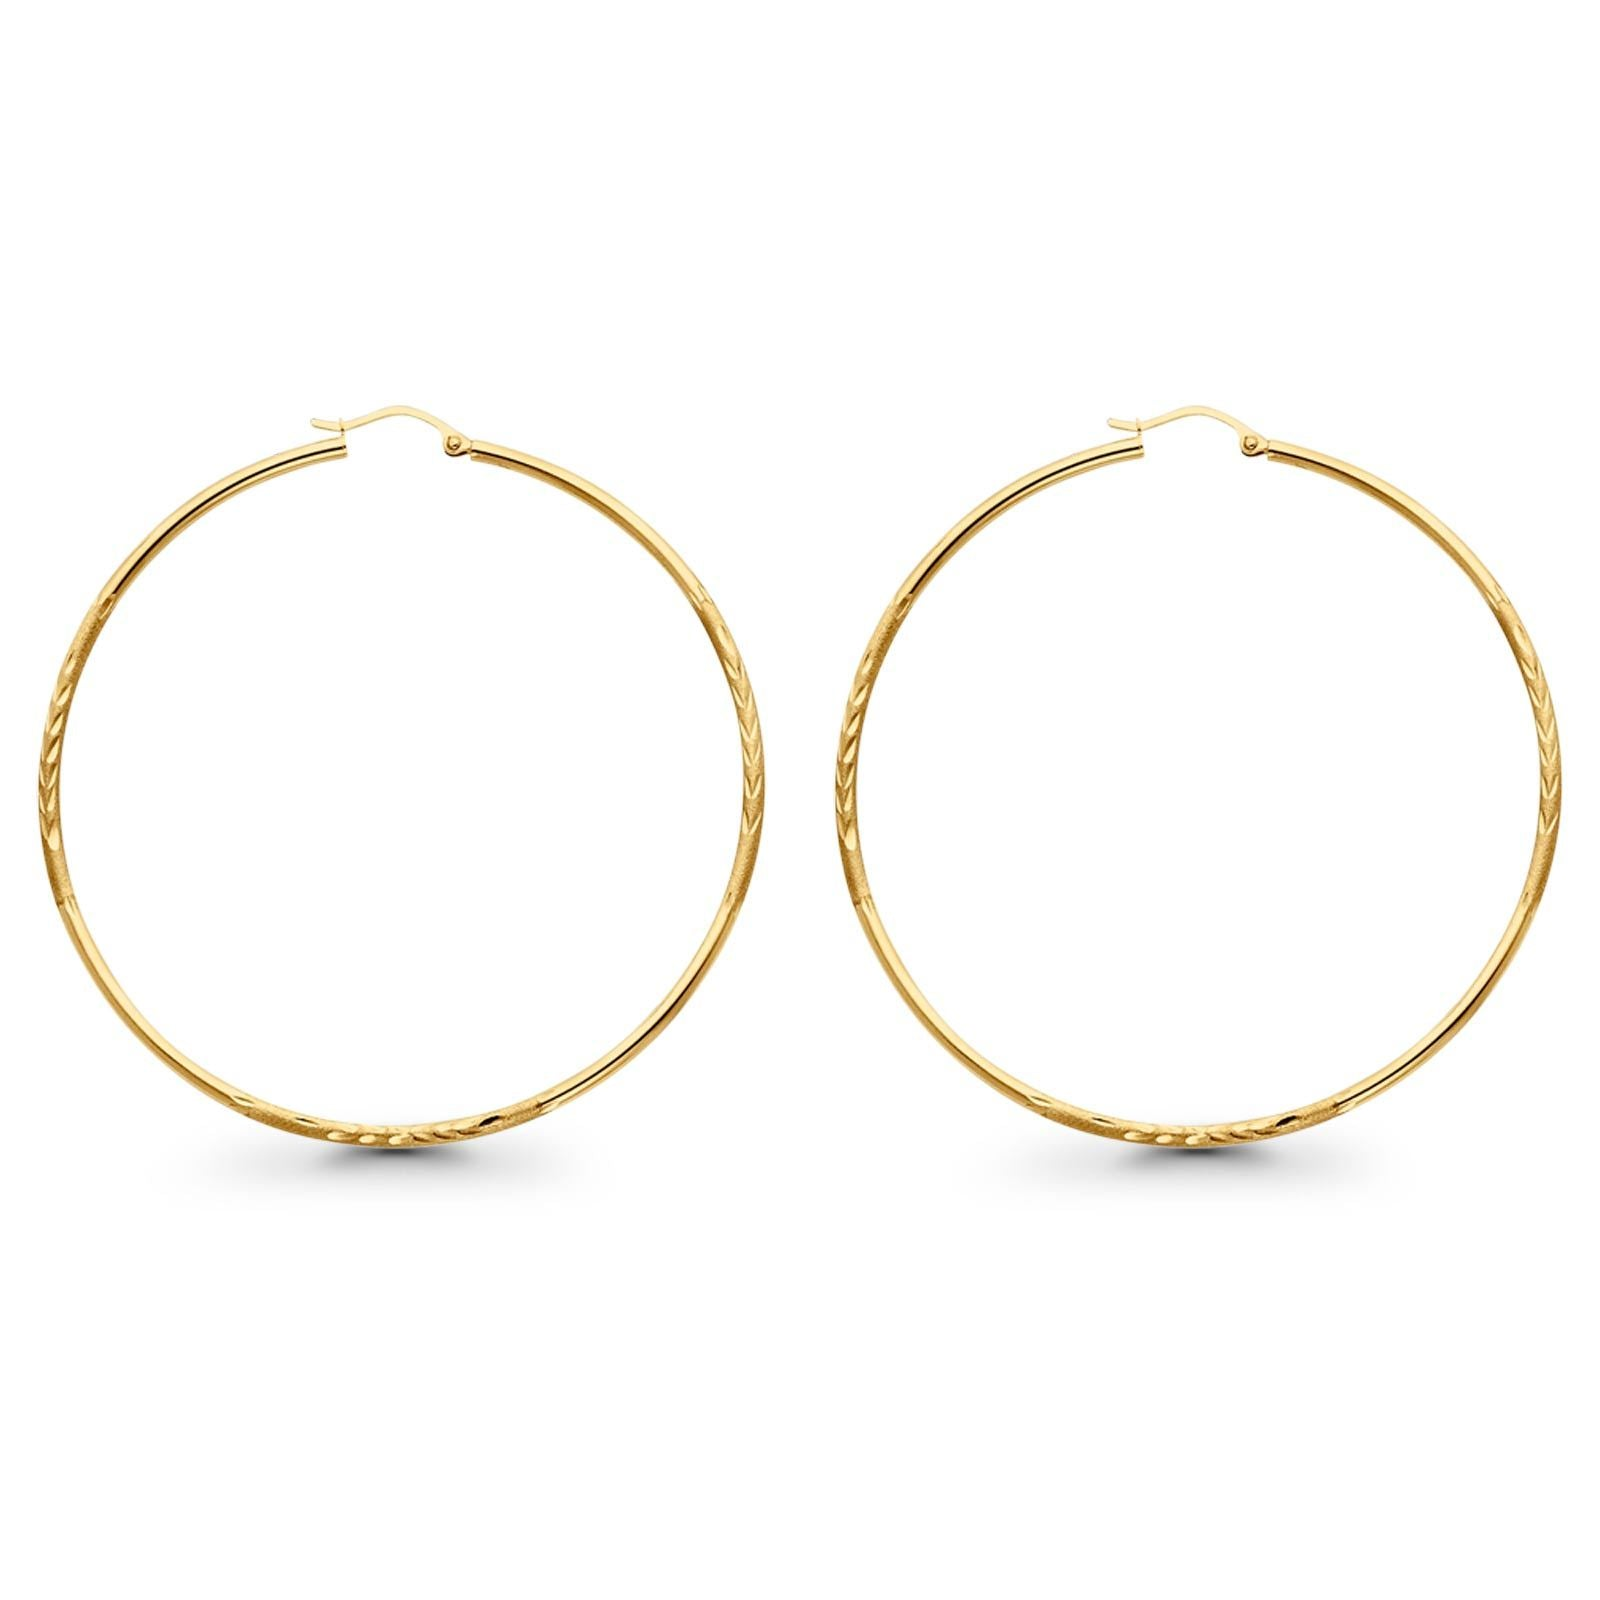 Yellow Gold 3.2grams 65mm Real 14K Diamond Cut 2mm Snap Closure Hoop Earrings Hinged